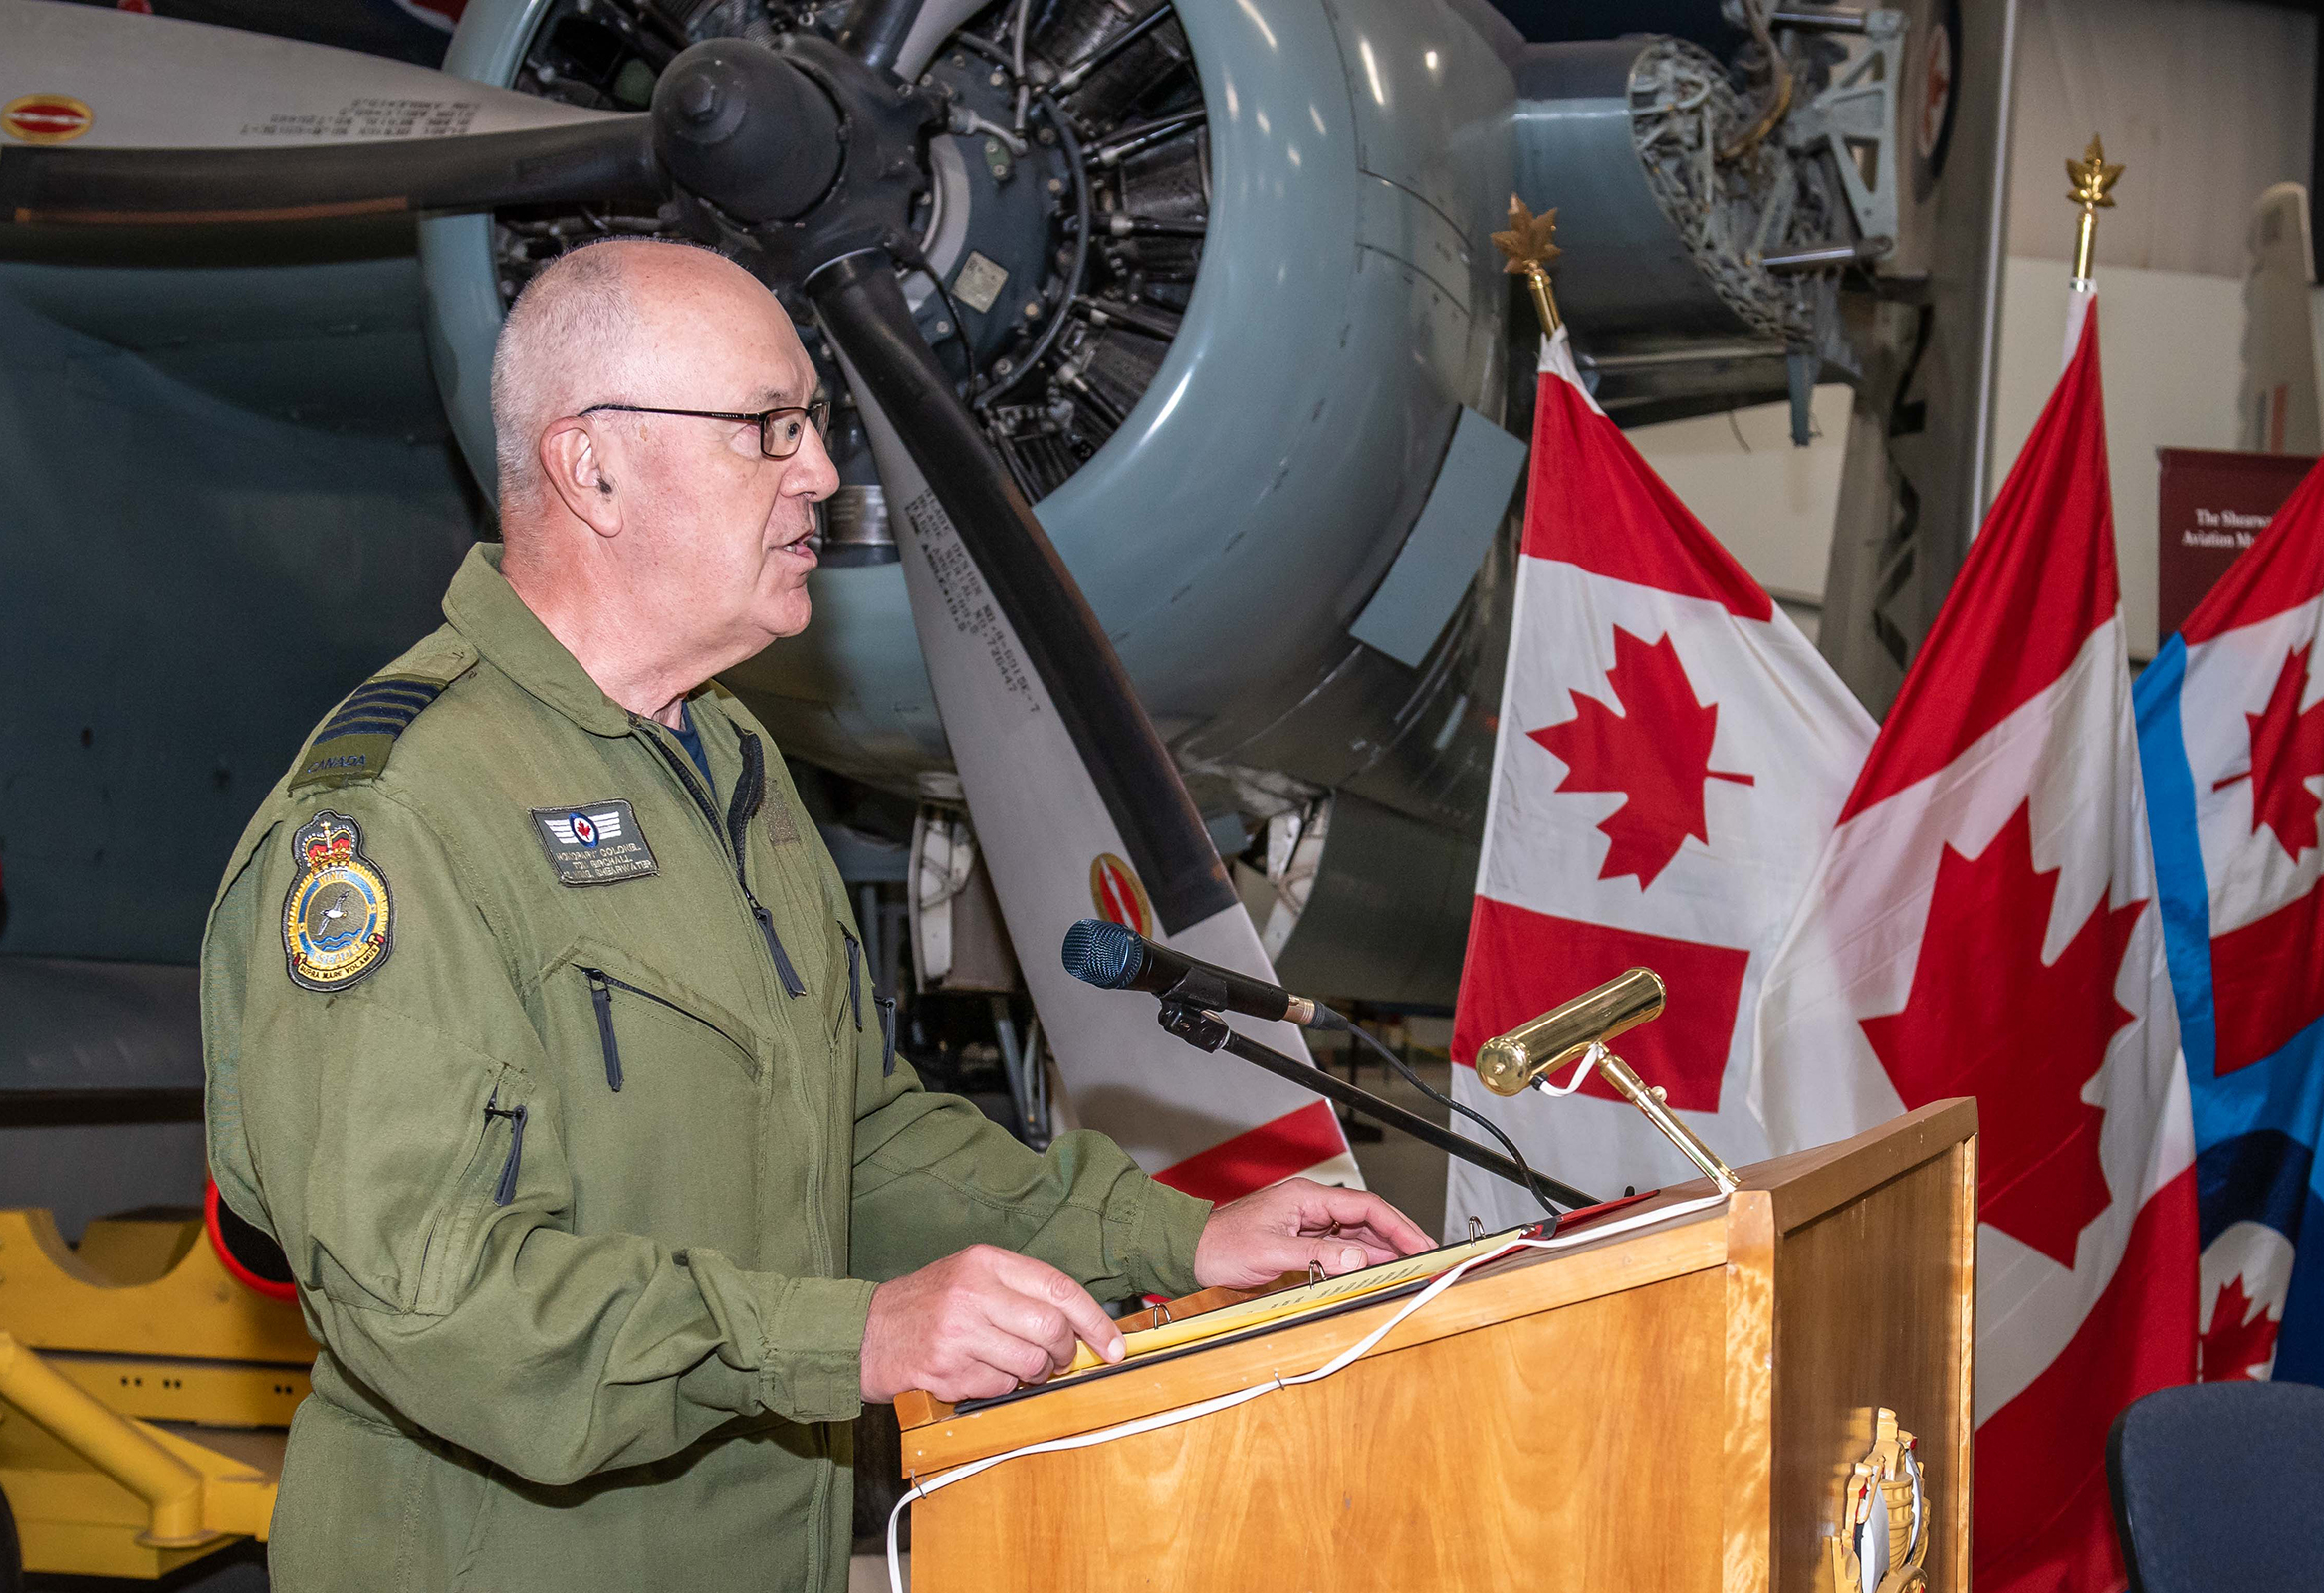 At the Shearwater Aviation Museum at 12 Wing in Nova Scotia, outgoing Honorary Colonel Tom Birchall addresses the audience at the change of appointment ceremony held on June 24, 2019. PHOTO: PHOTO: Master Corporal Anthony Laviollette, SW04-2019-0257-003